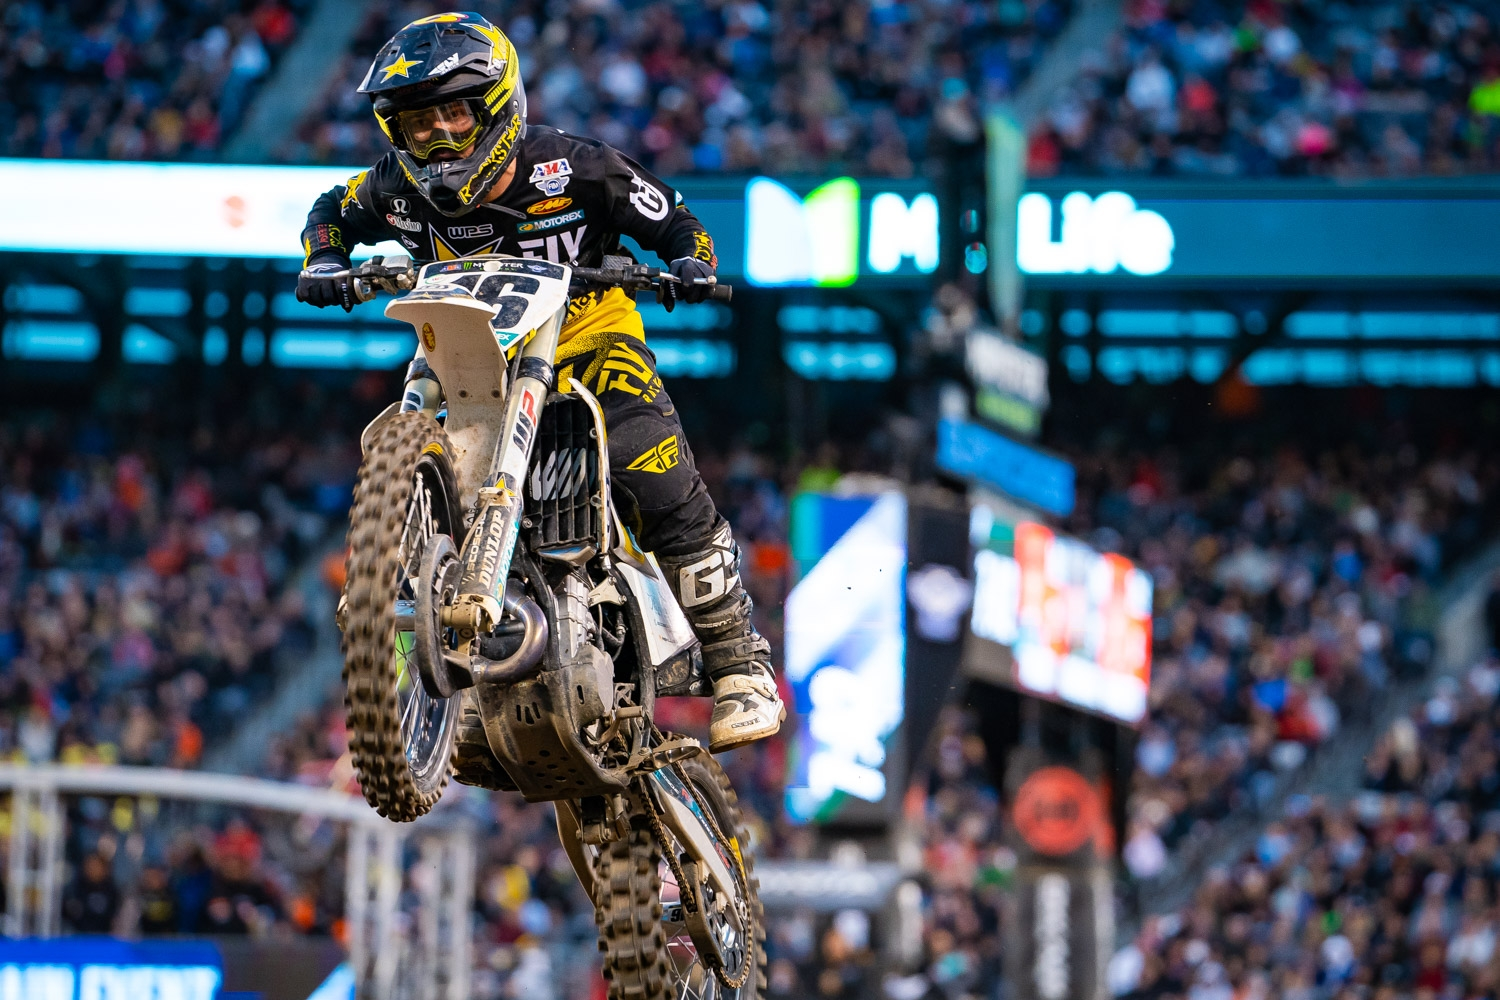 2019-East-Rutherford-Supercross-450-Race-Report_123